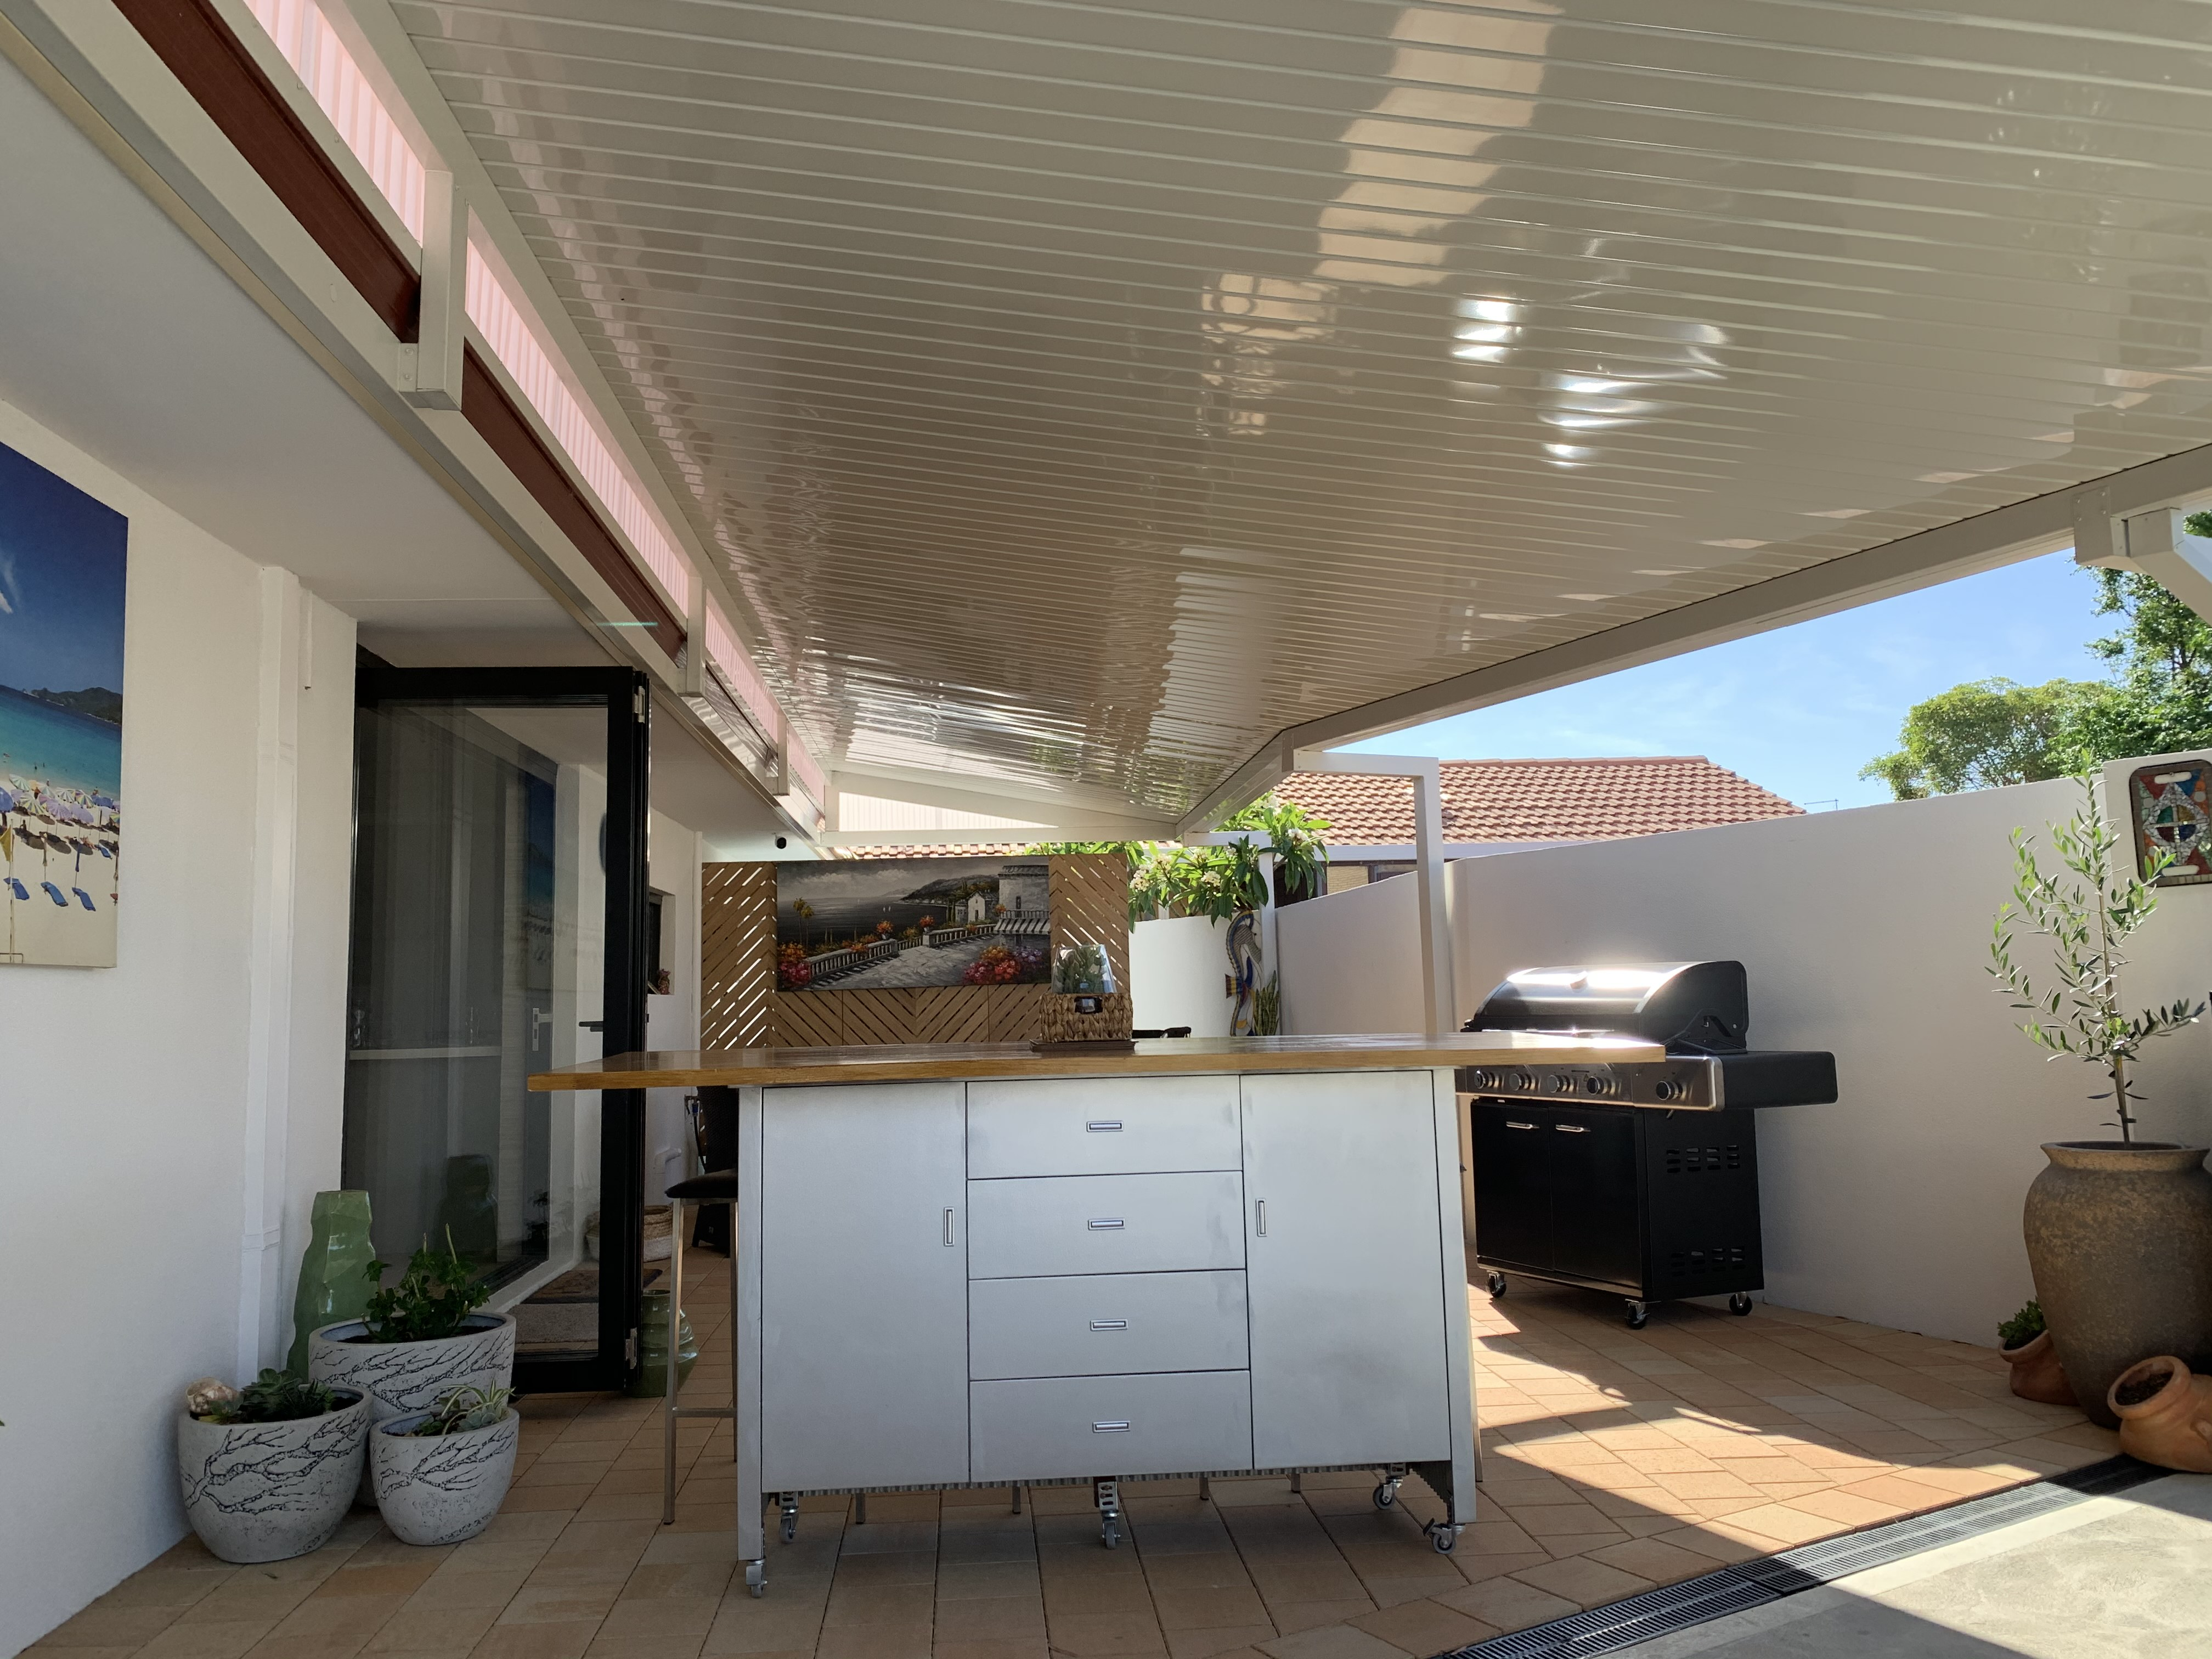 MANDURAH PATIOS RAISED FLAT CDEK w/ ANGL